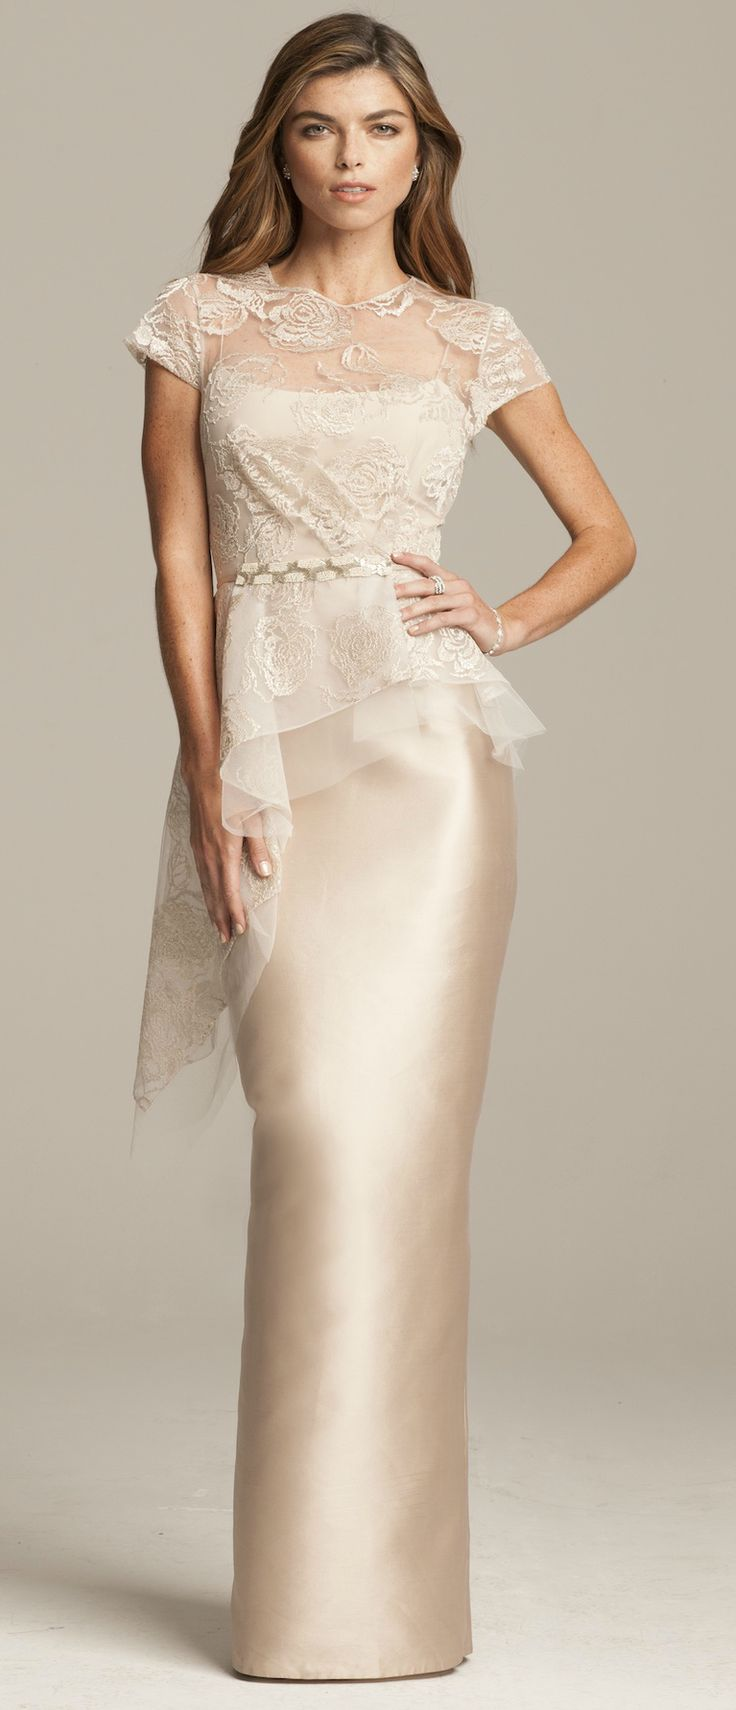 Champagne mother-of-the-bride gown